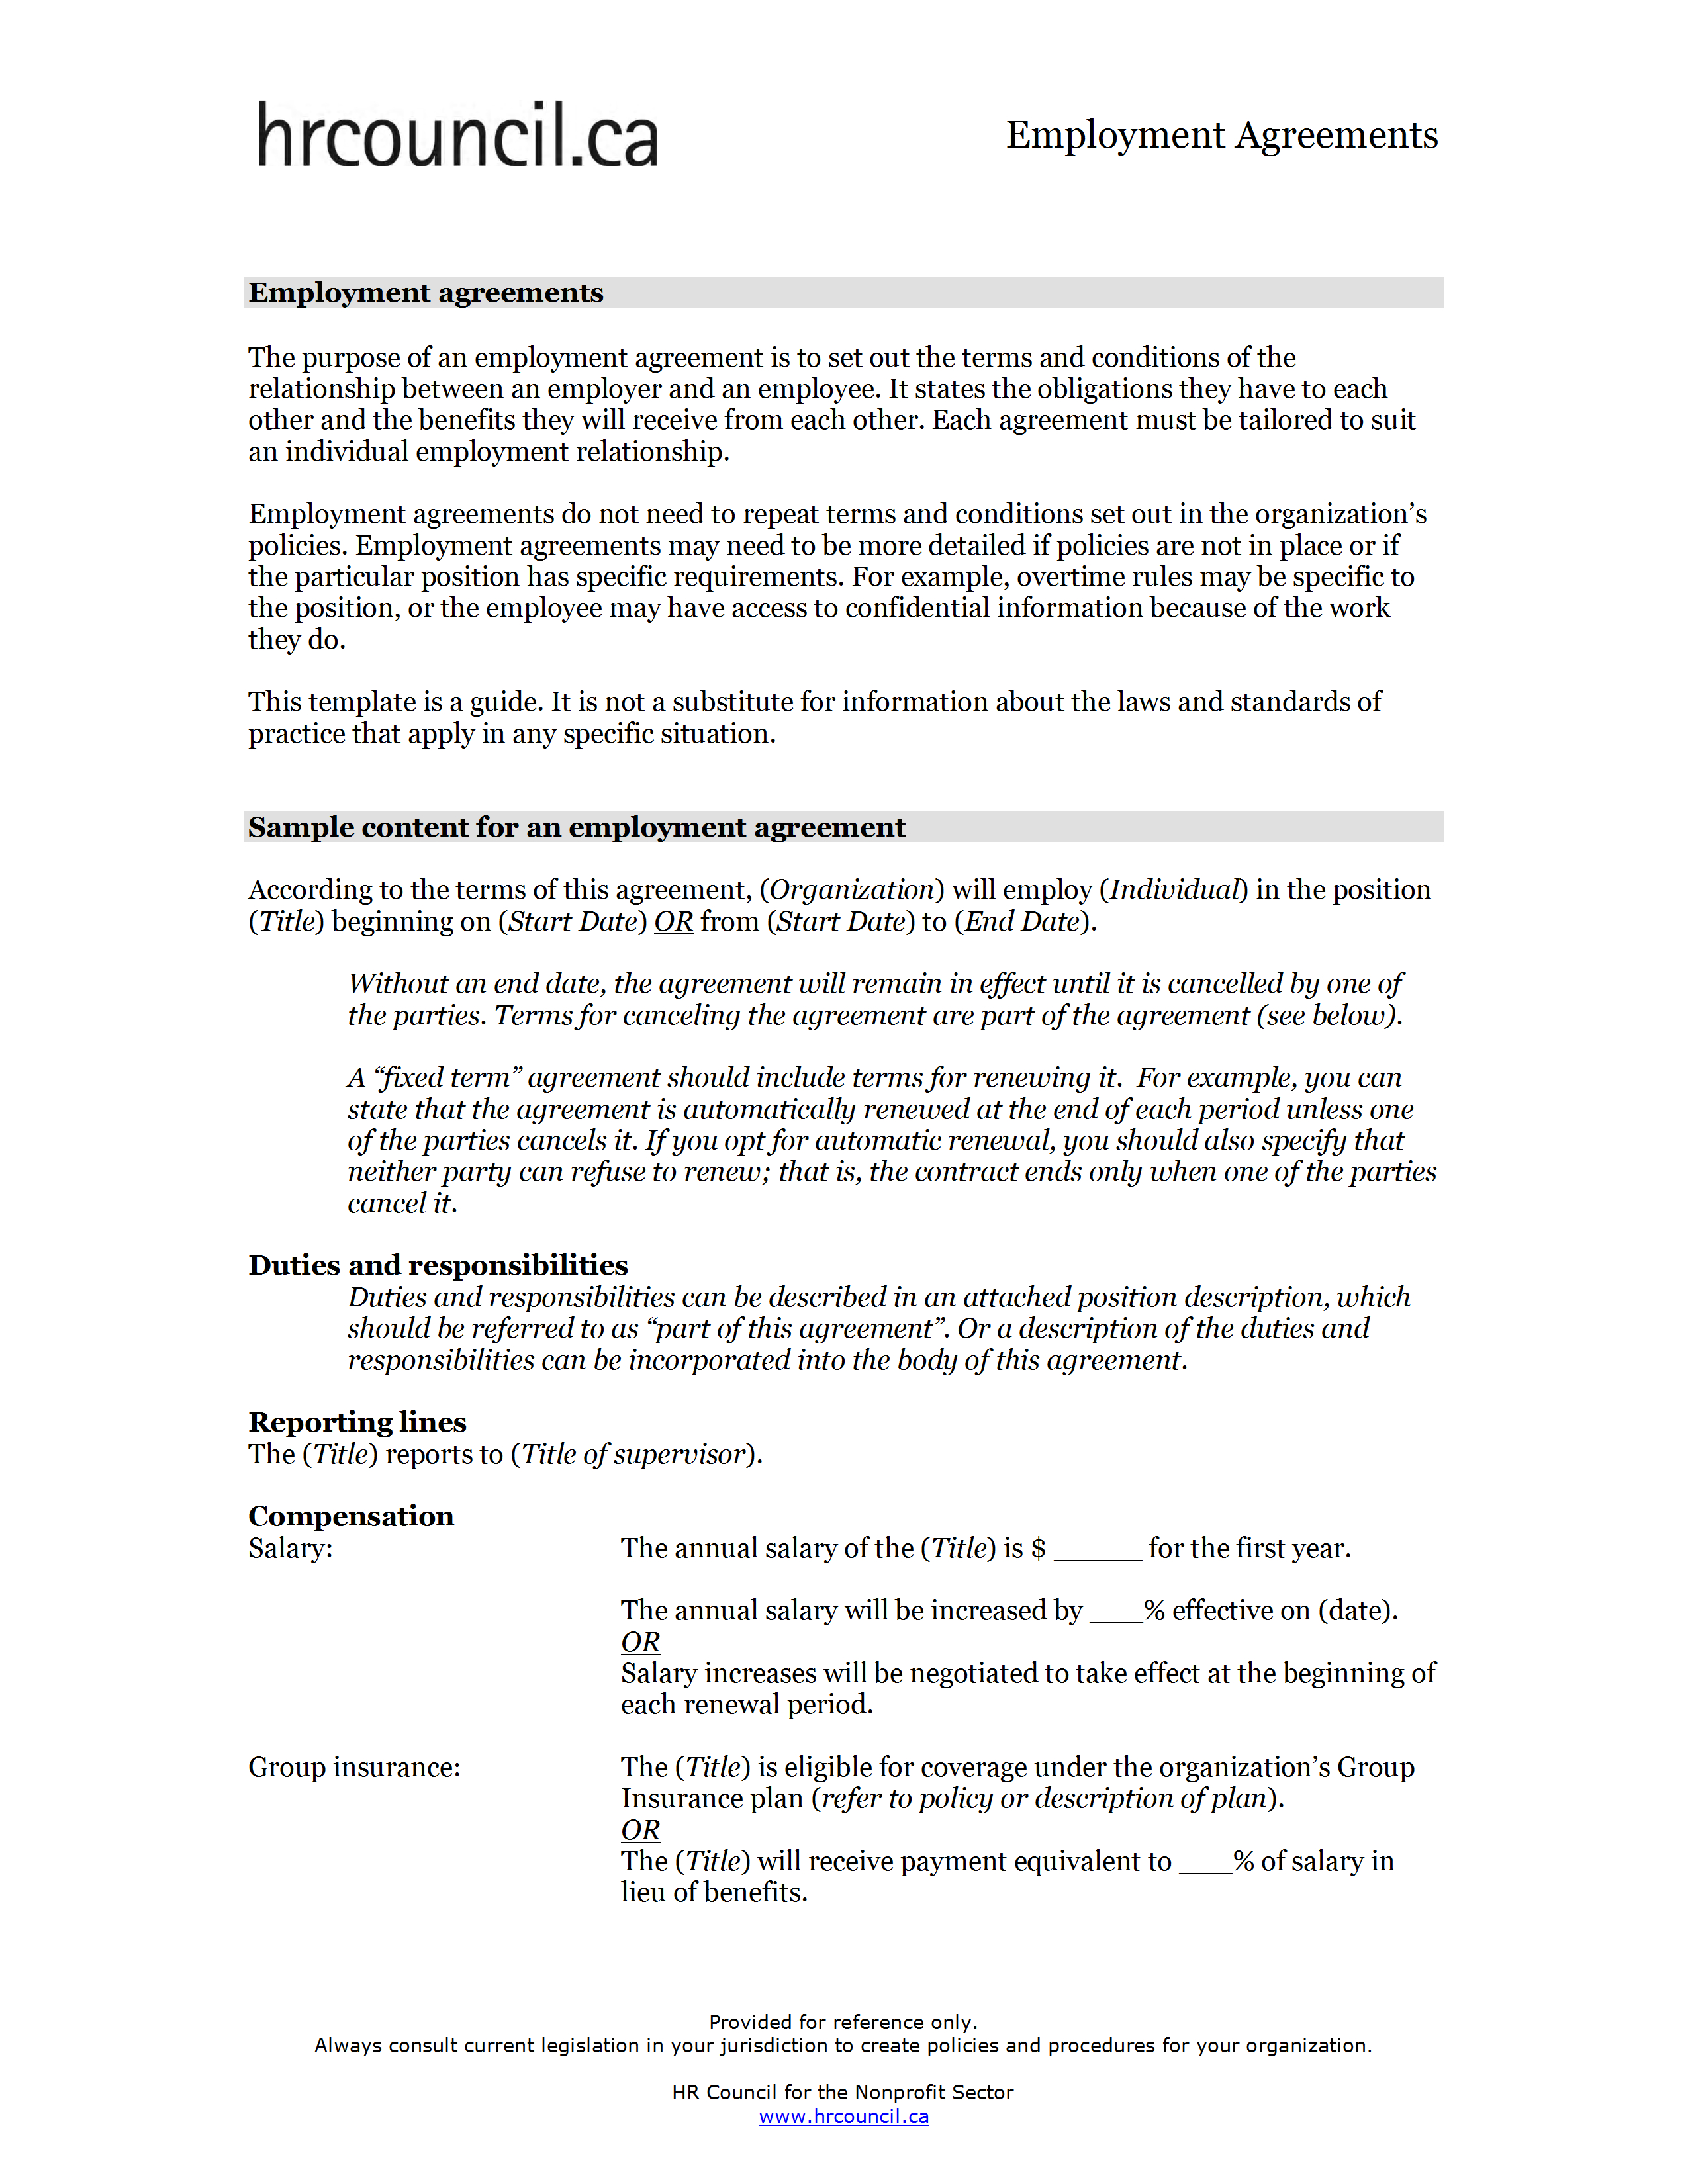 Employment Agreement Template Intended For Overtime Agreement Template